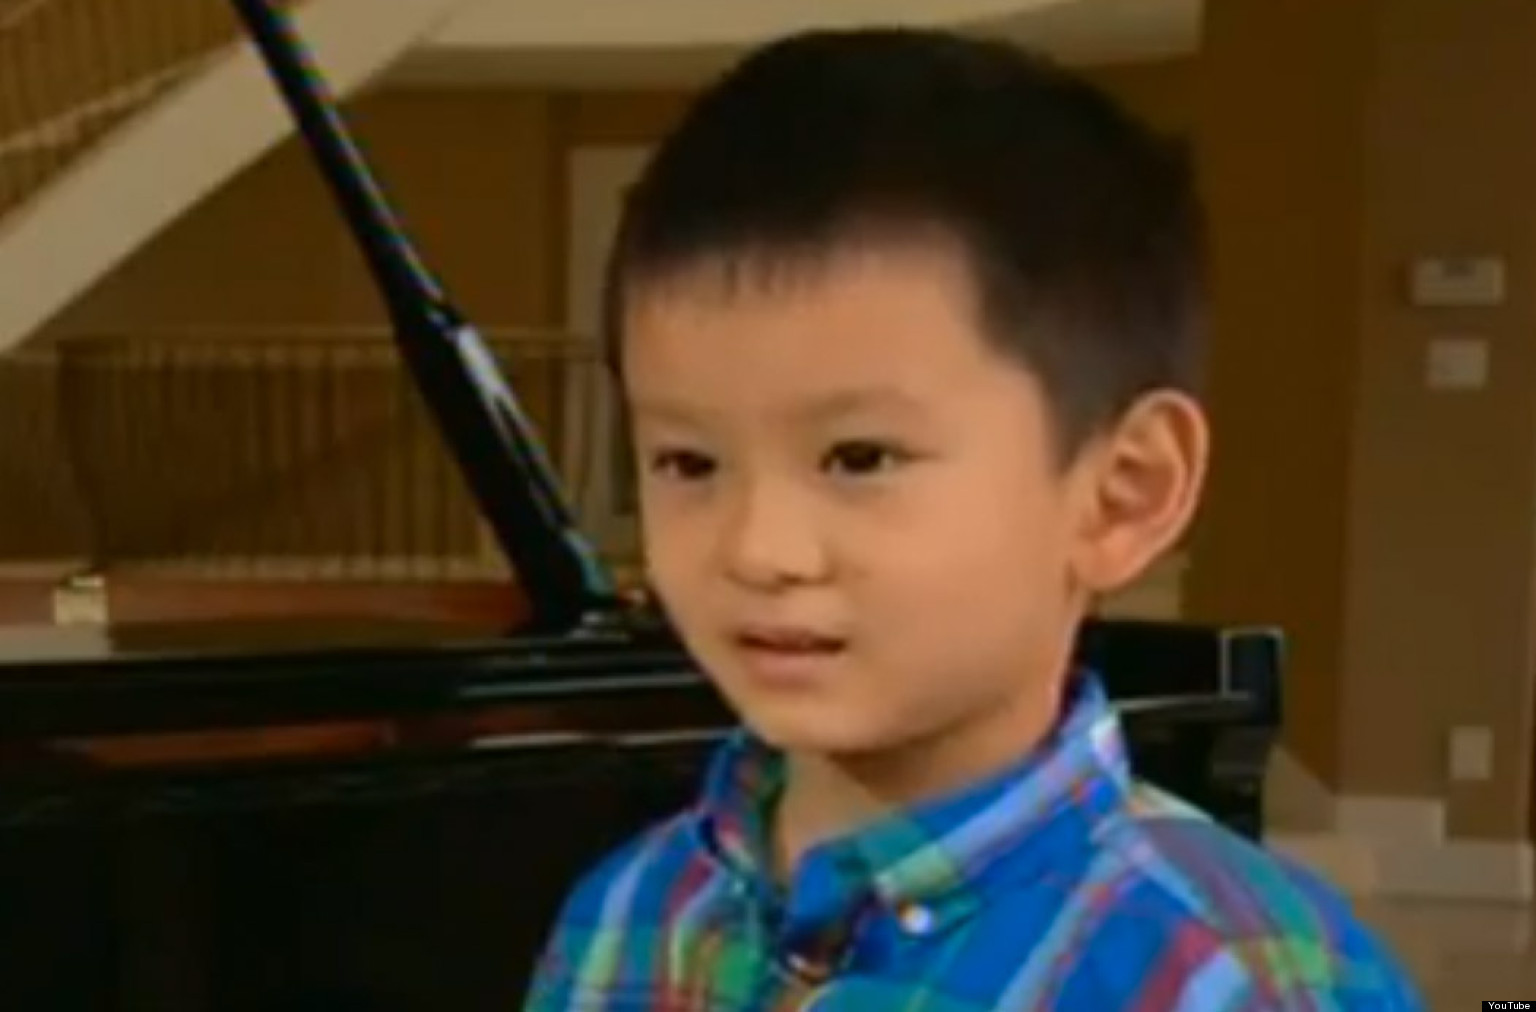 child prodigy ryan wang headed to carnegie hall at only